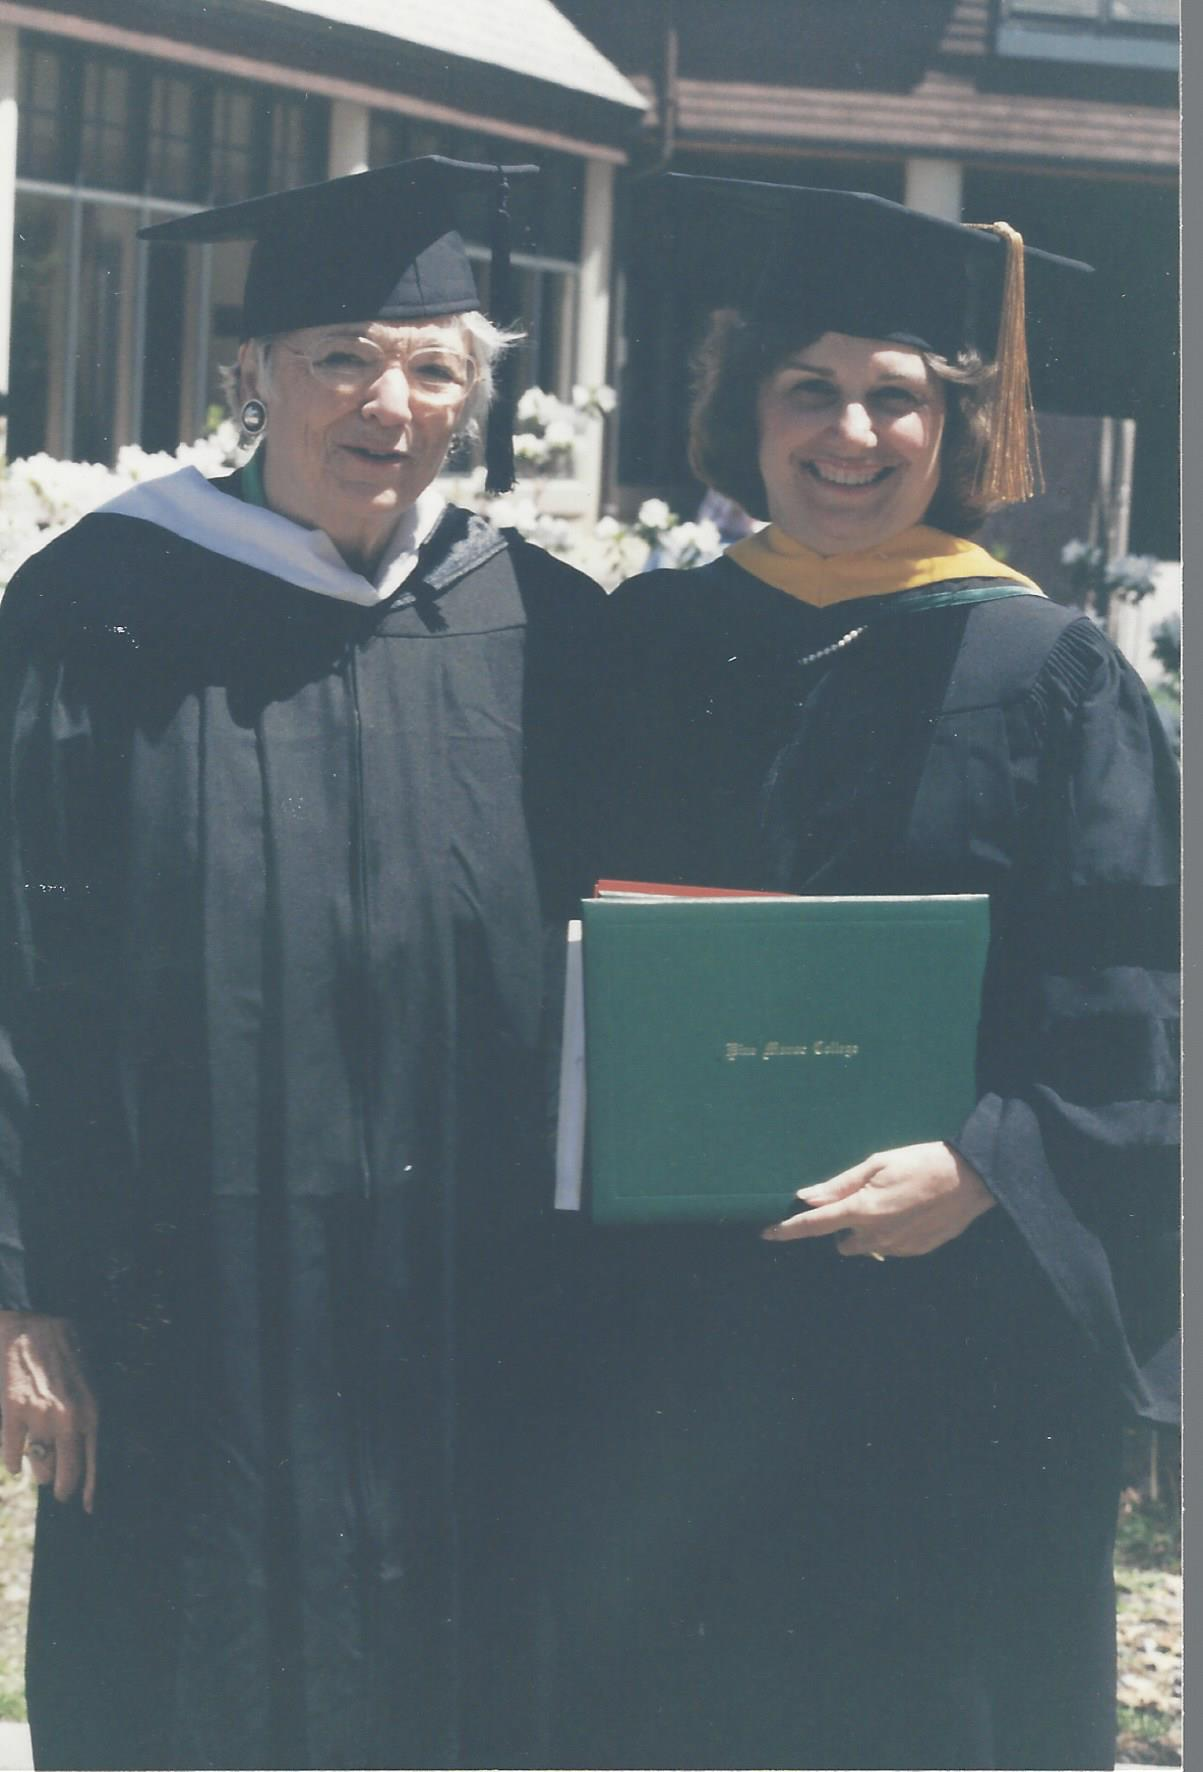 Pine Manor College Honorary Degree with Mary Ann Tinklepaugh Fish at her 50th Reunion (2000)